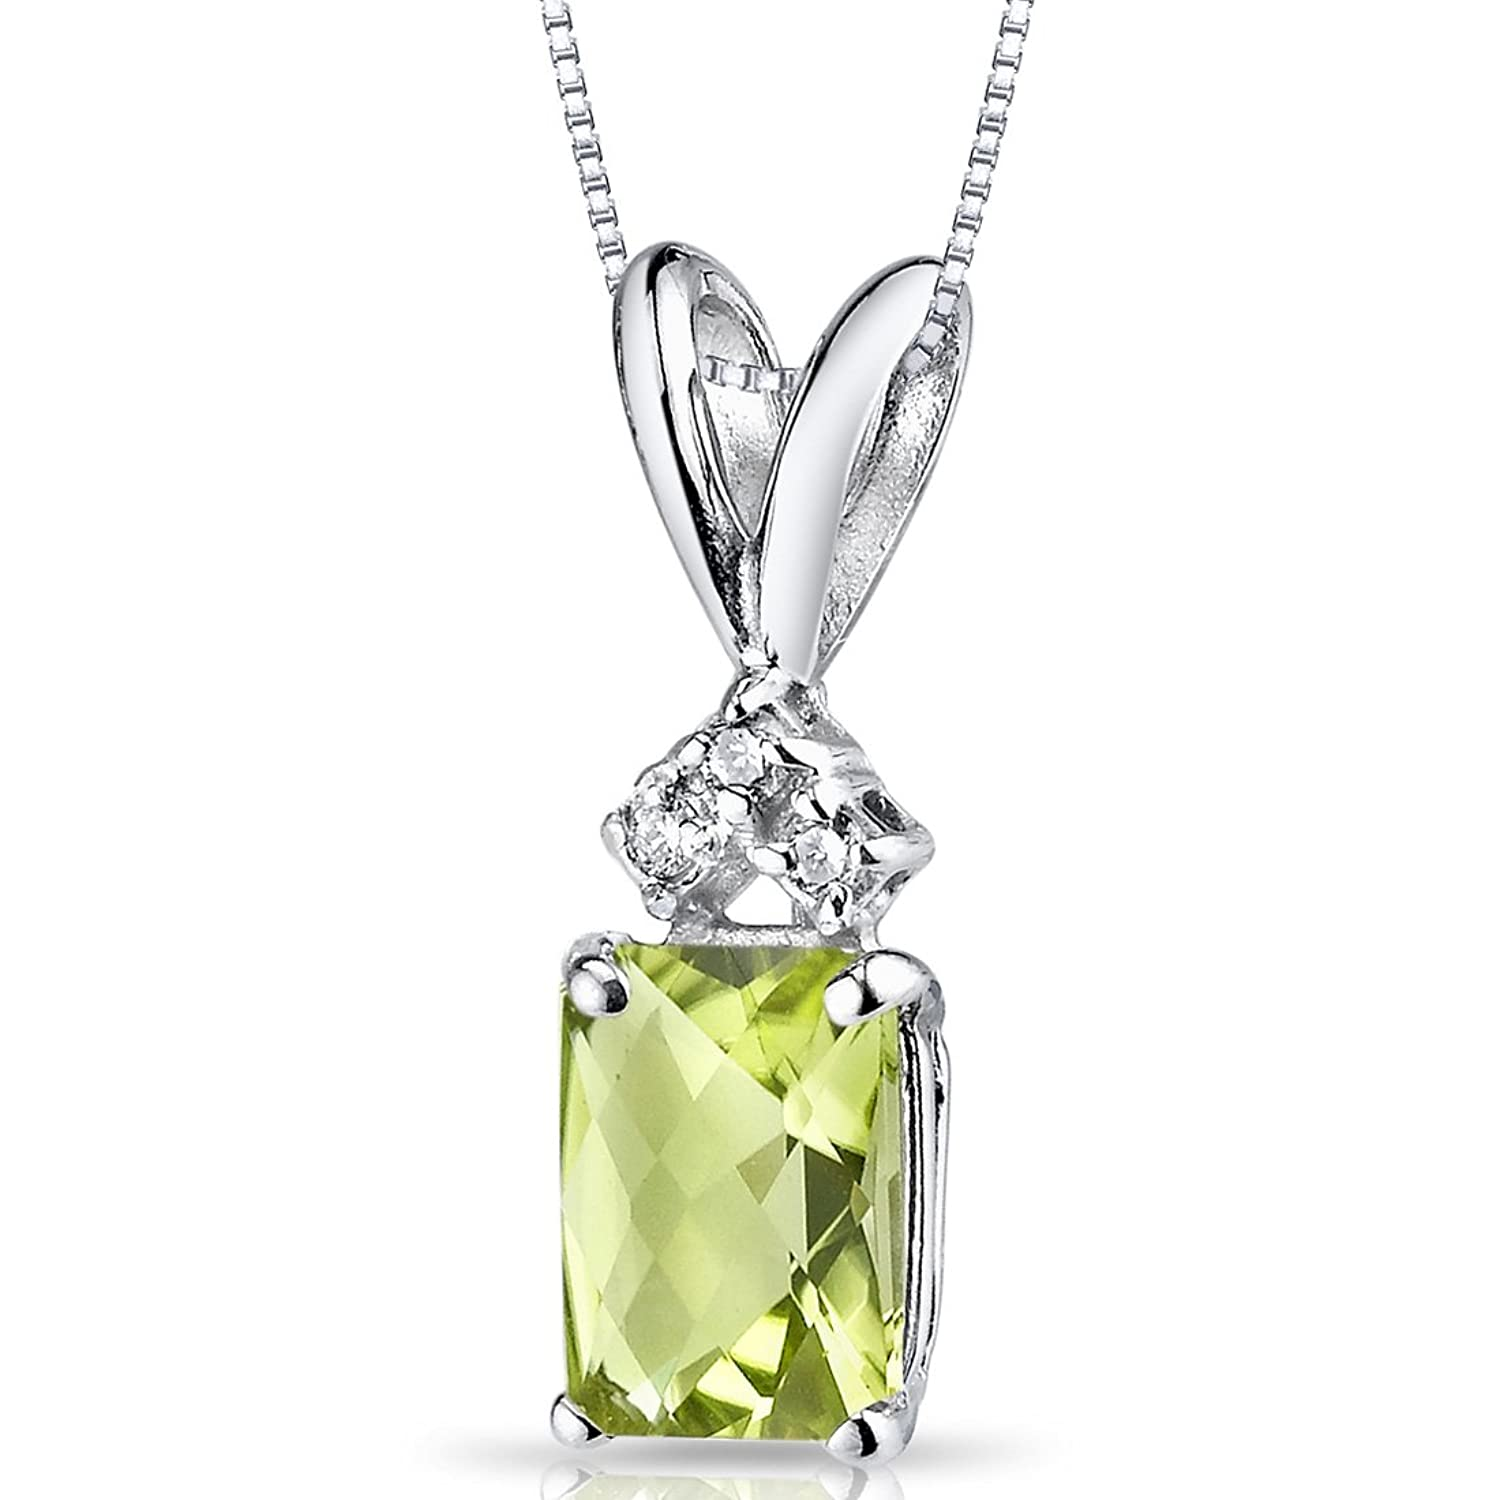 14 Karat White Gold Radiant Cut 1.00 Carats Peridot Diamond Pendant